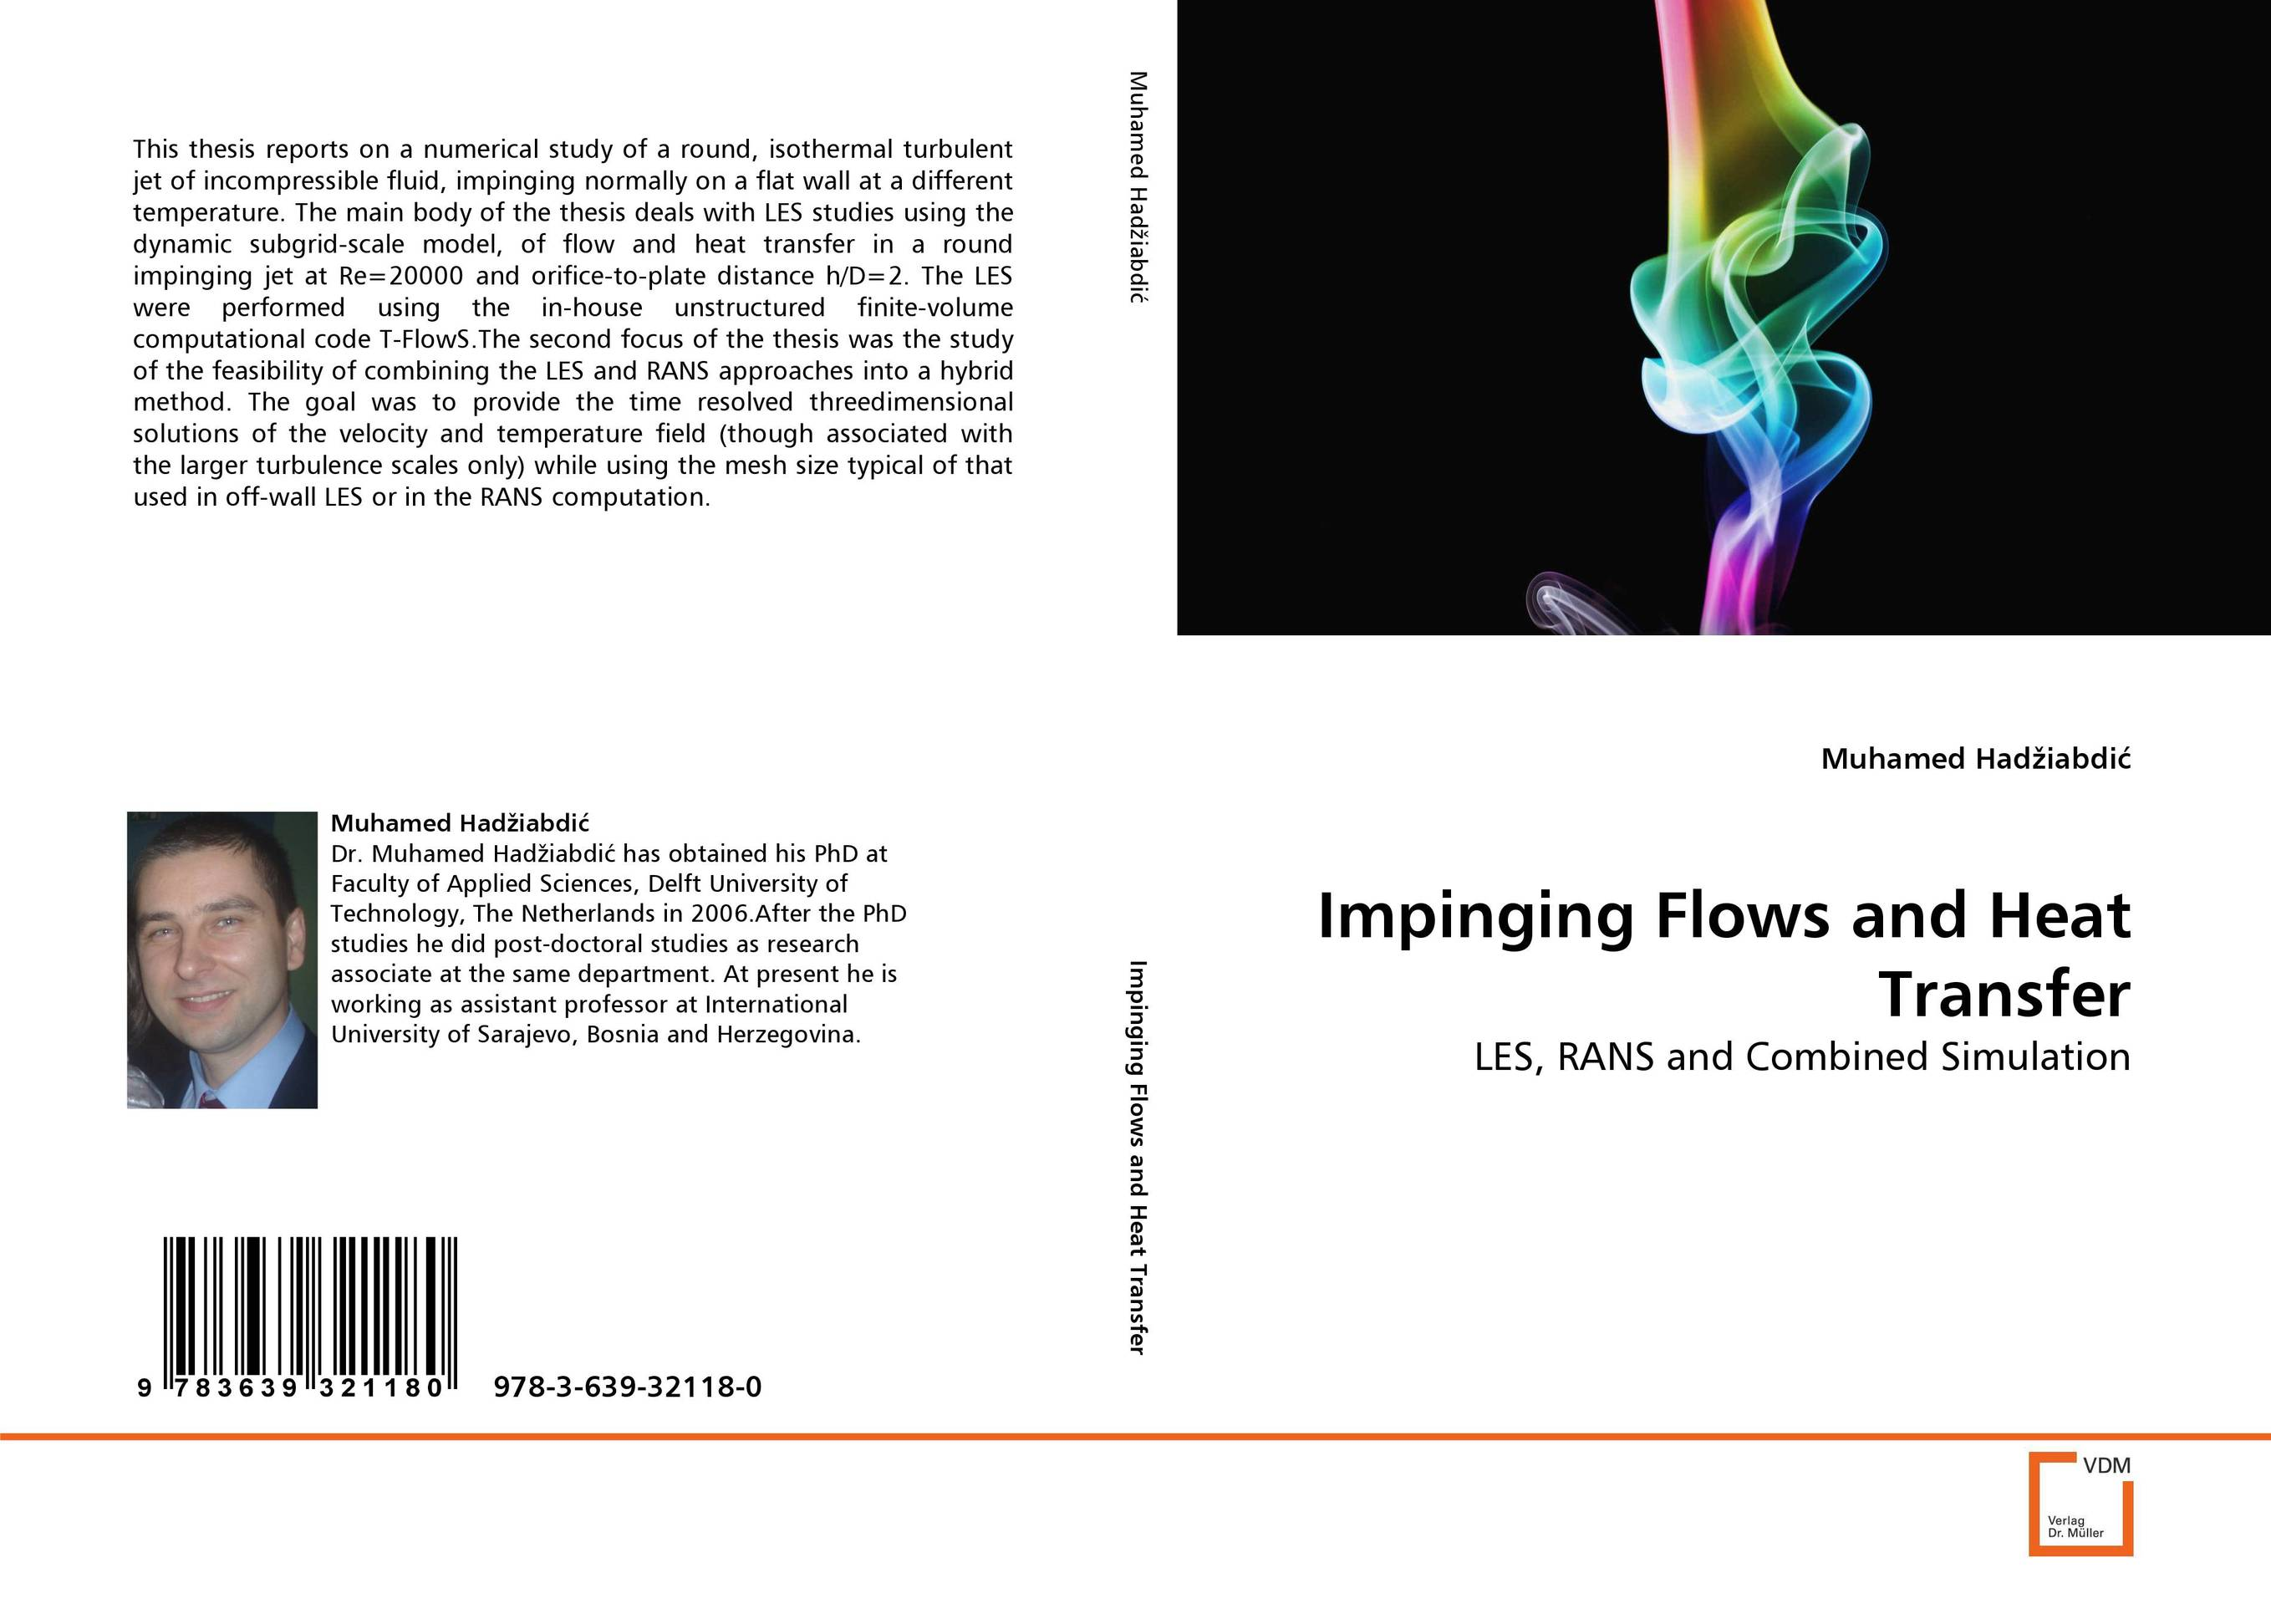 Impinging Flows and Heat Transfer